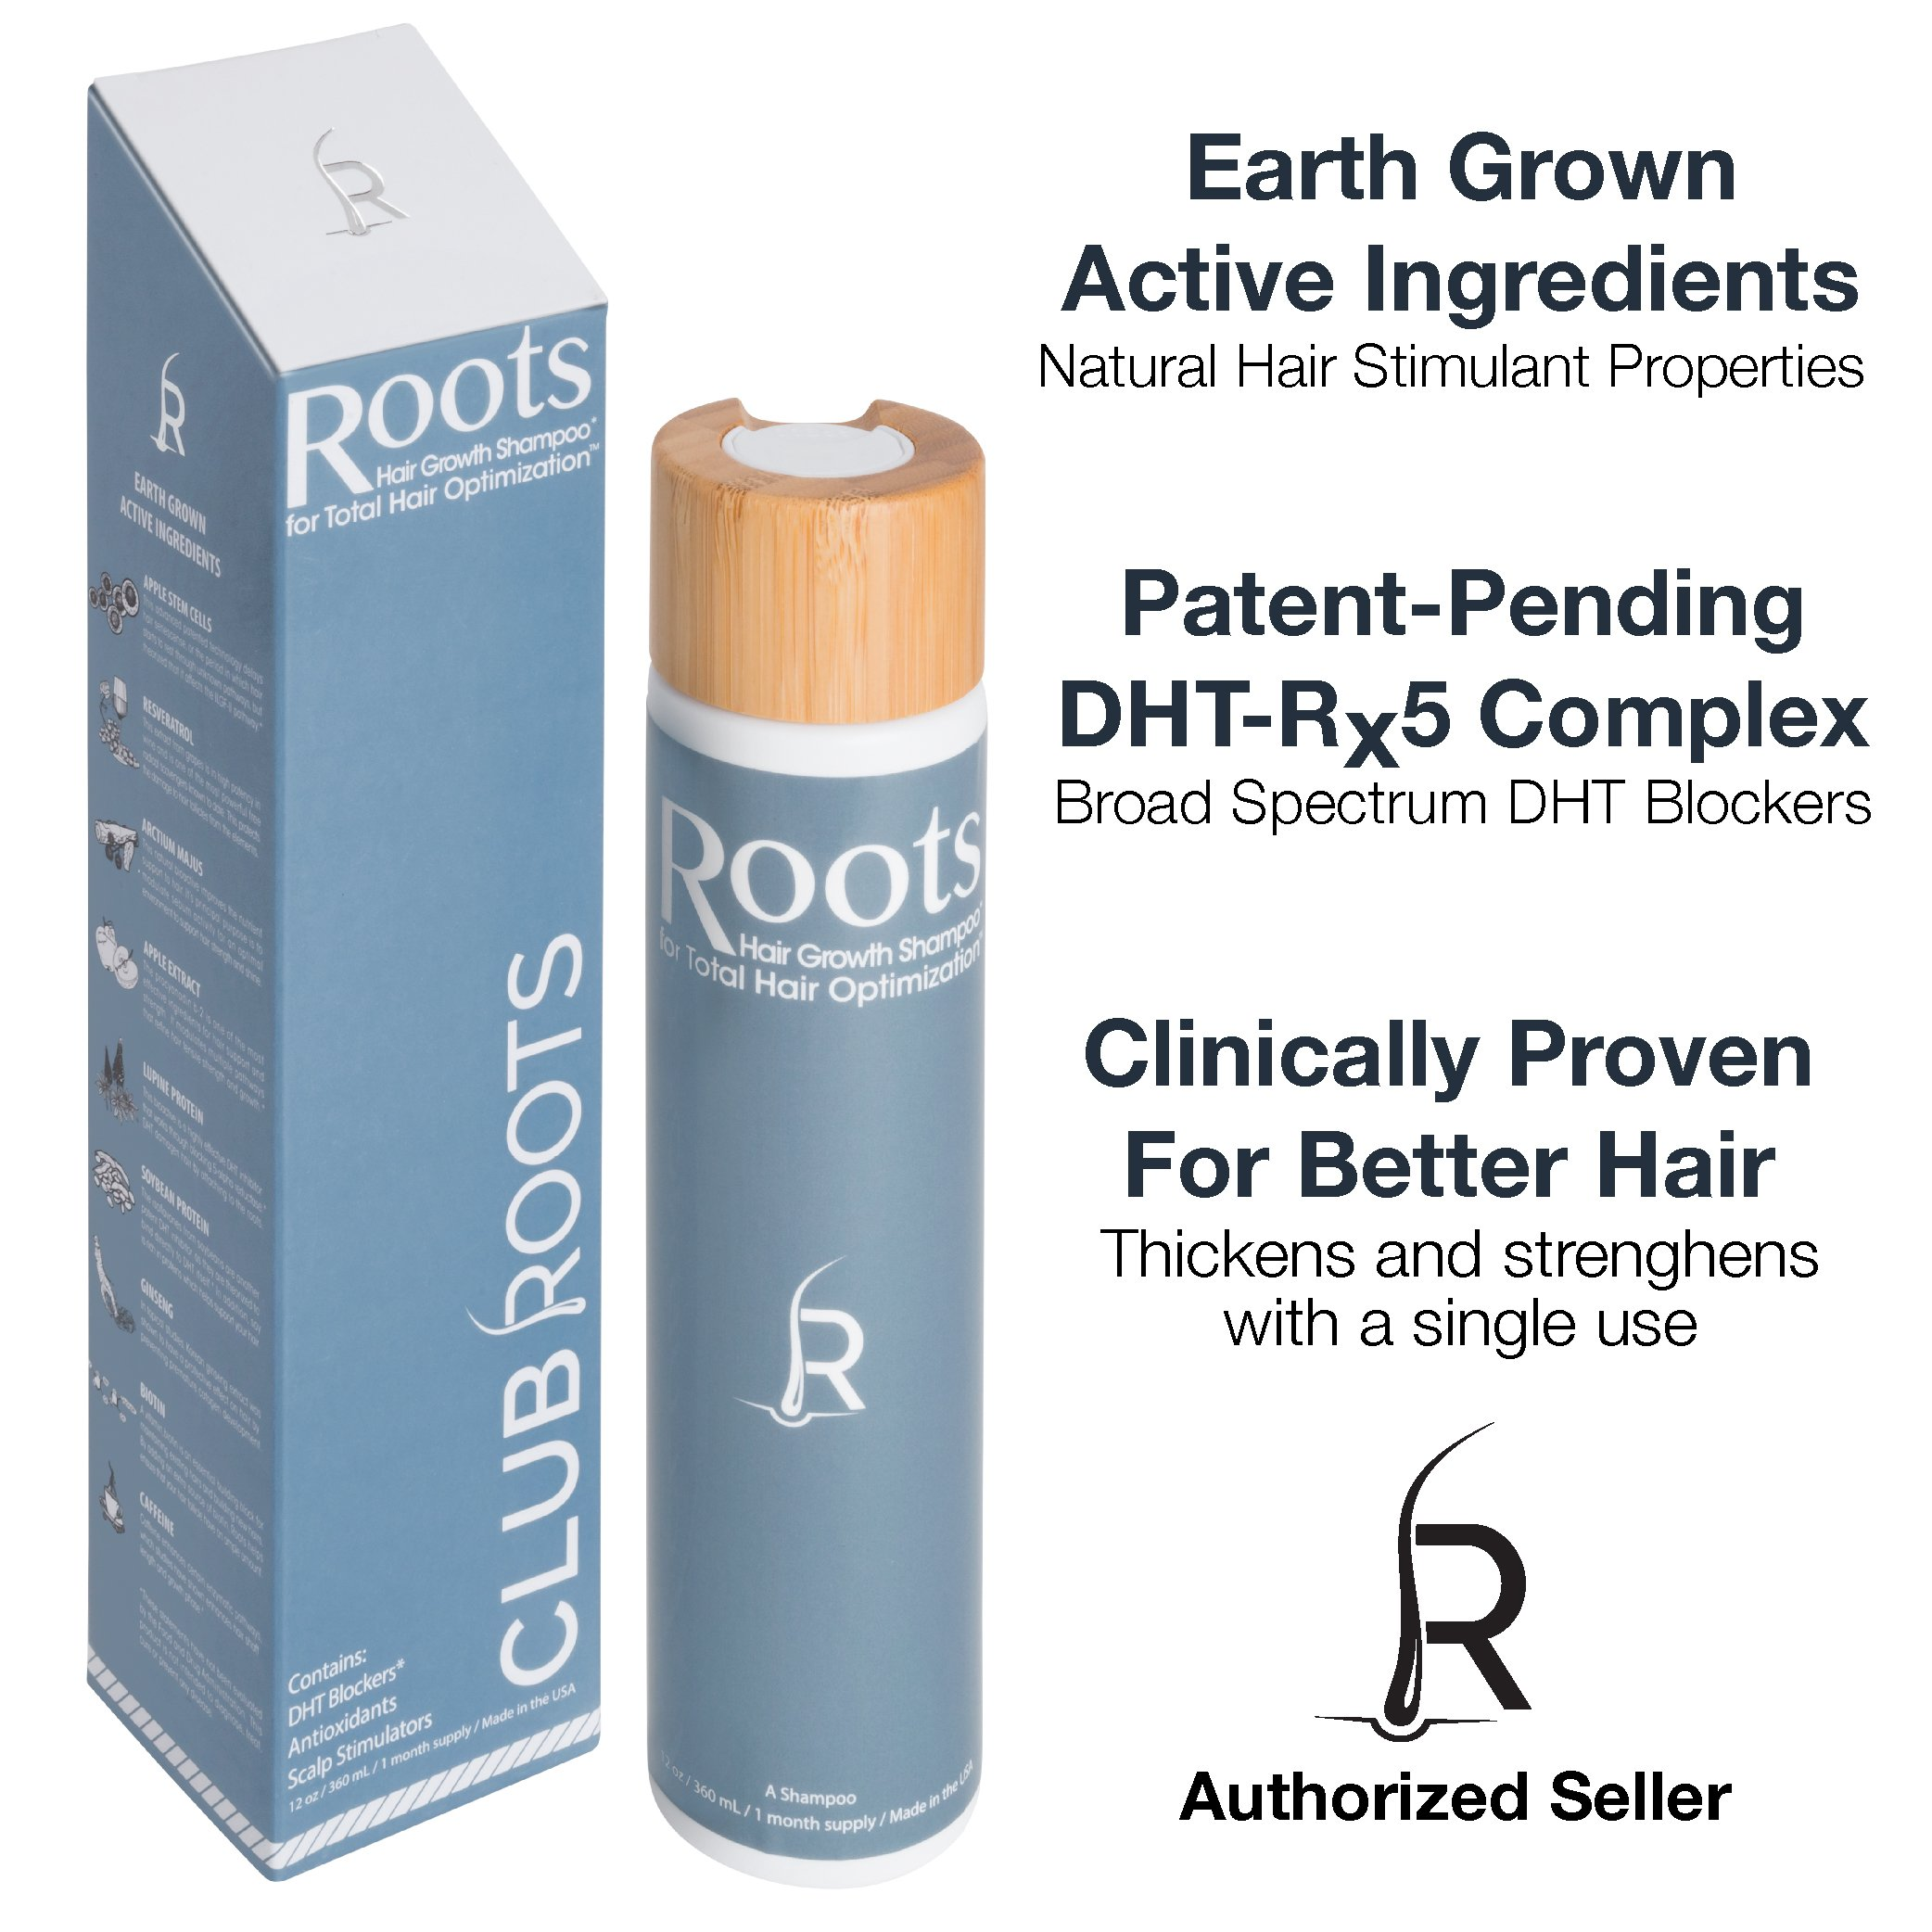 Roots Shampoo Original Formula | Hair Growth Stimulating Shampoo with DHT Blocker, Biotin, Caffeine by Club Roots